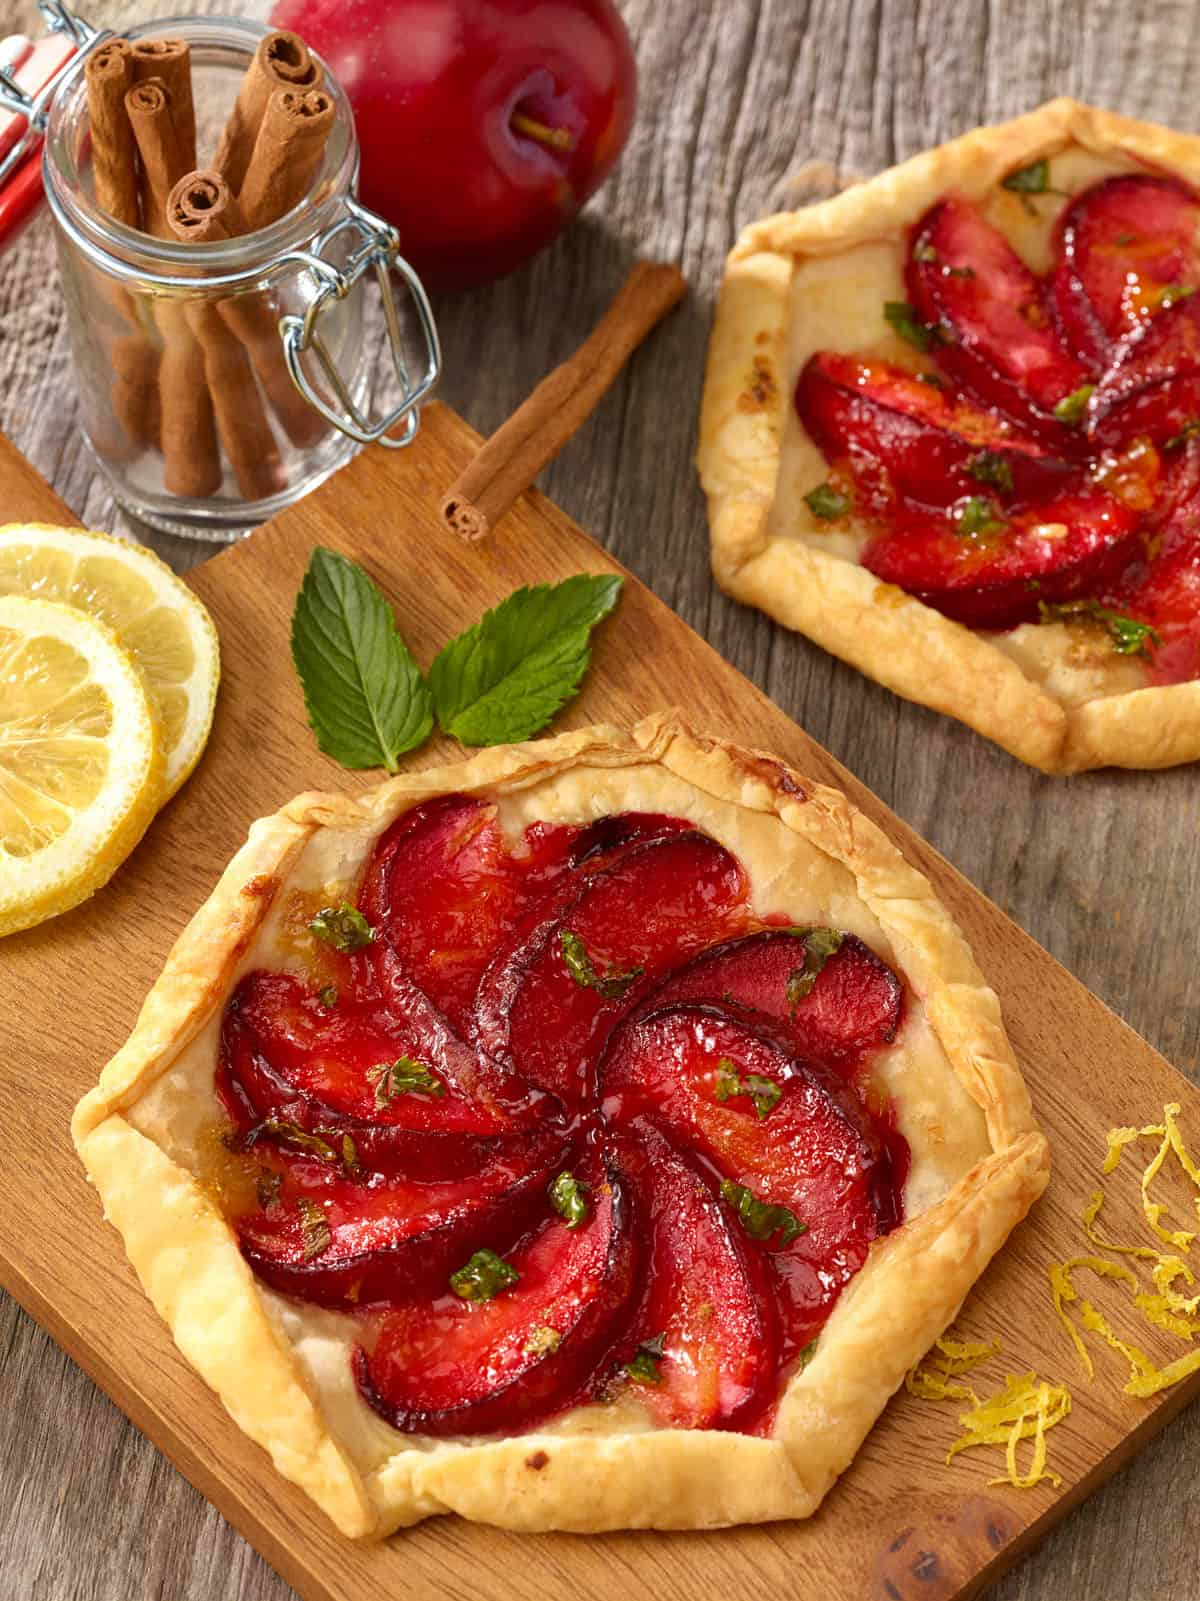 Wooden board holding an Individual Plum Tart, with a second tart to the side